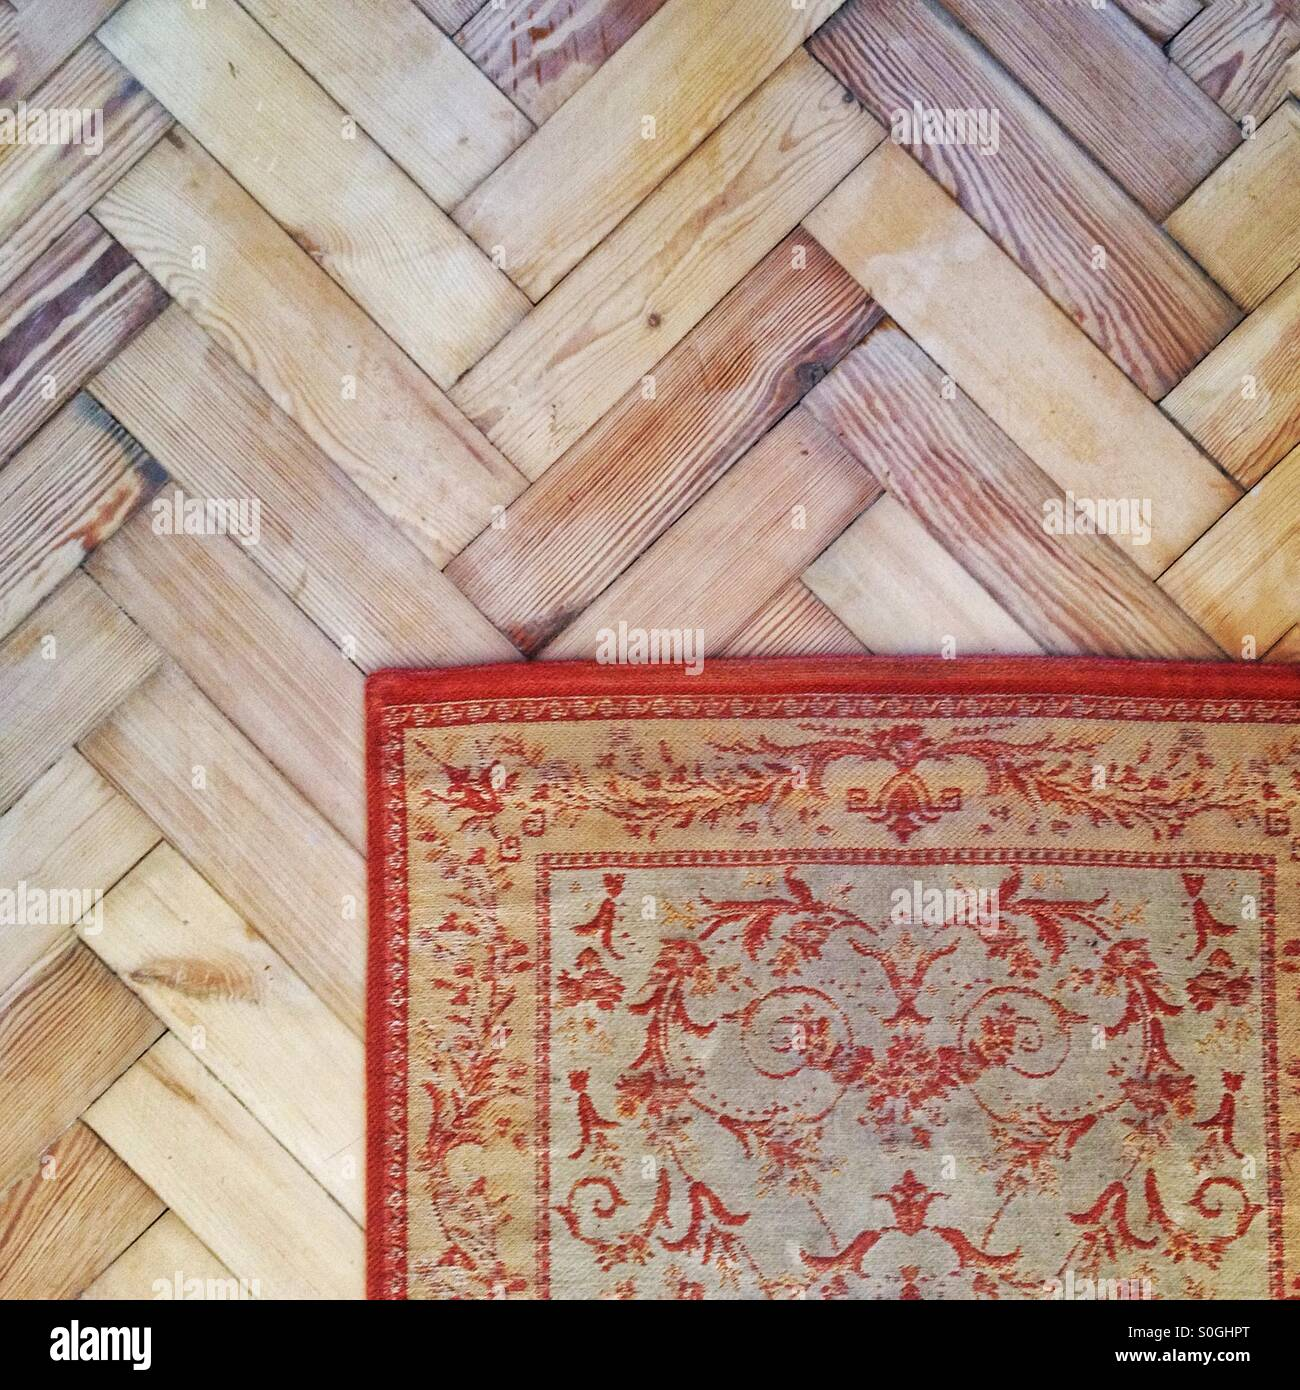 Parquet floor and rug - Stock Image